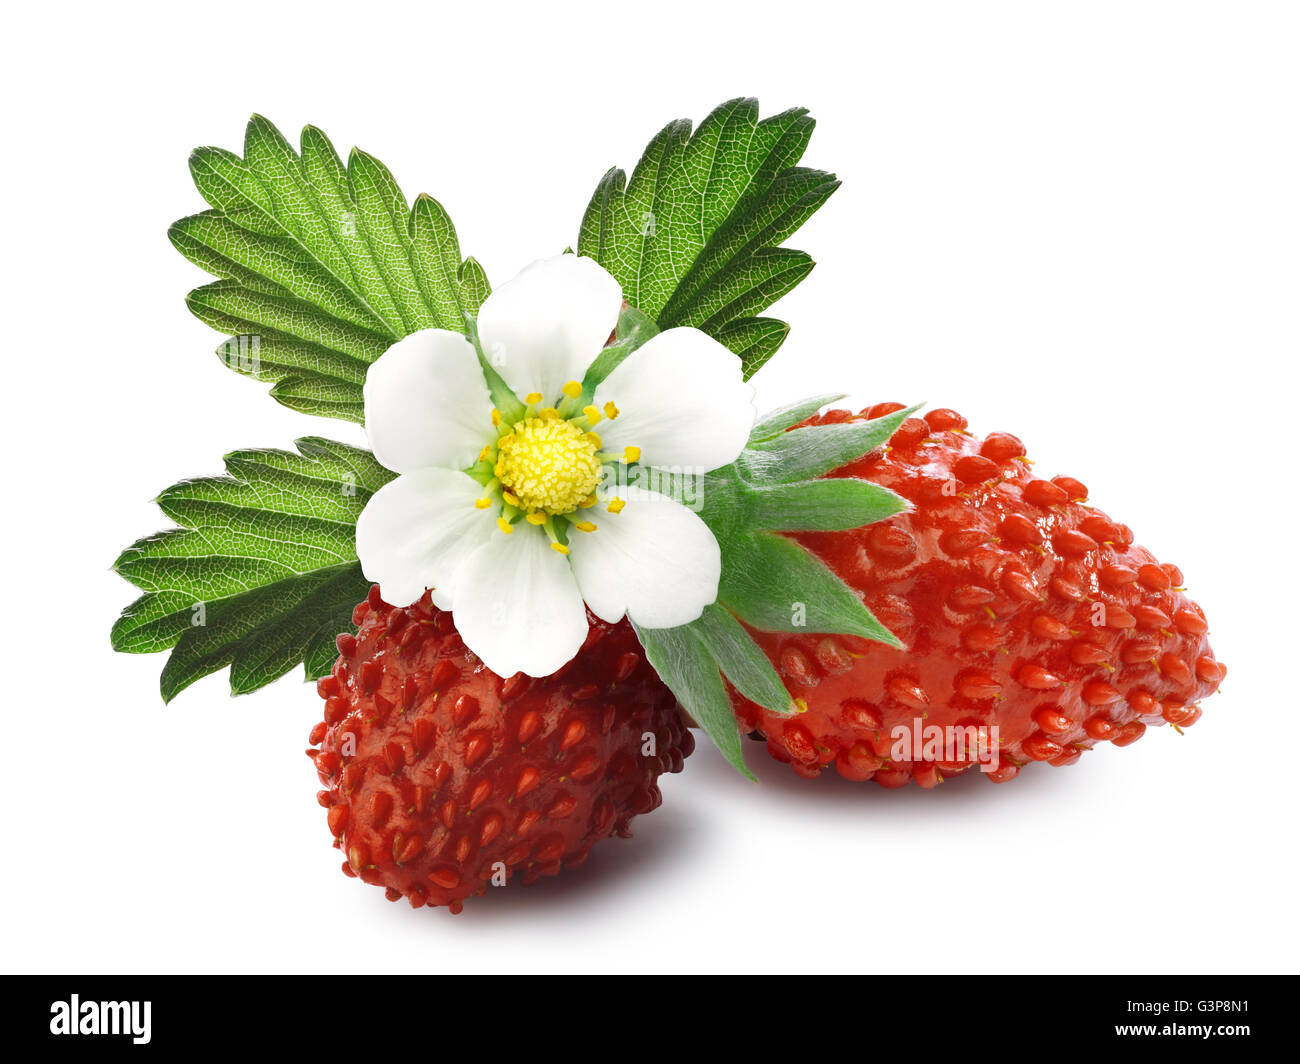 Woodland strawberry (Fragaria vesca, fraise de bois)  with flower. Separate clipping paths for shadows and berries, - Stock Image